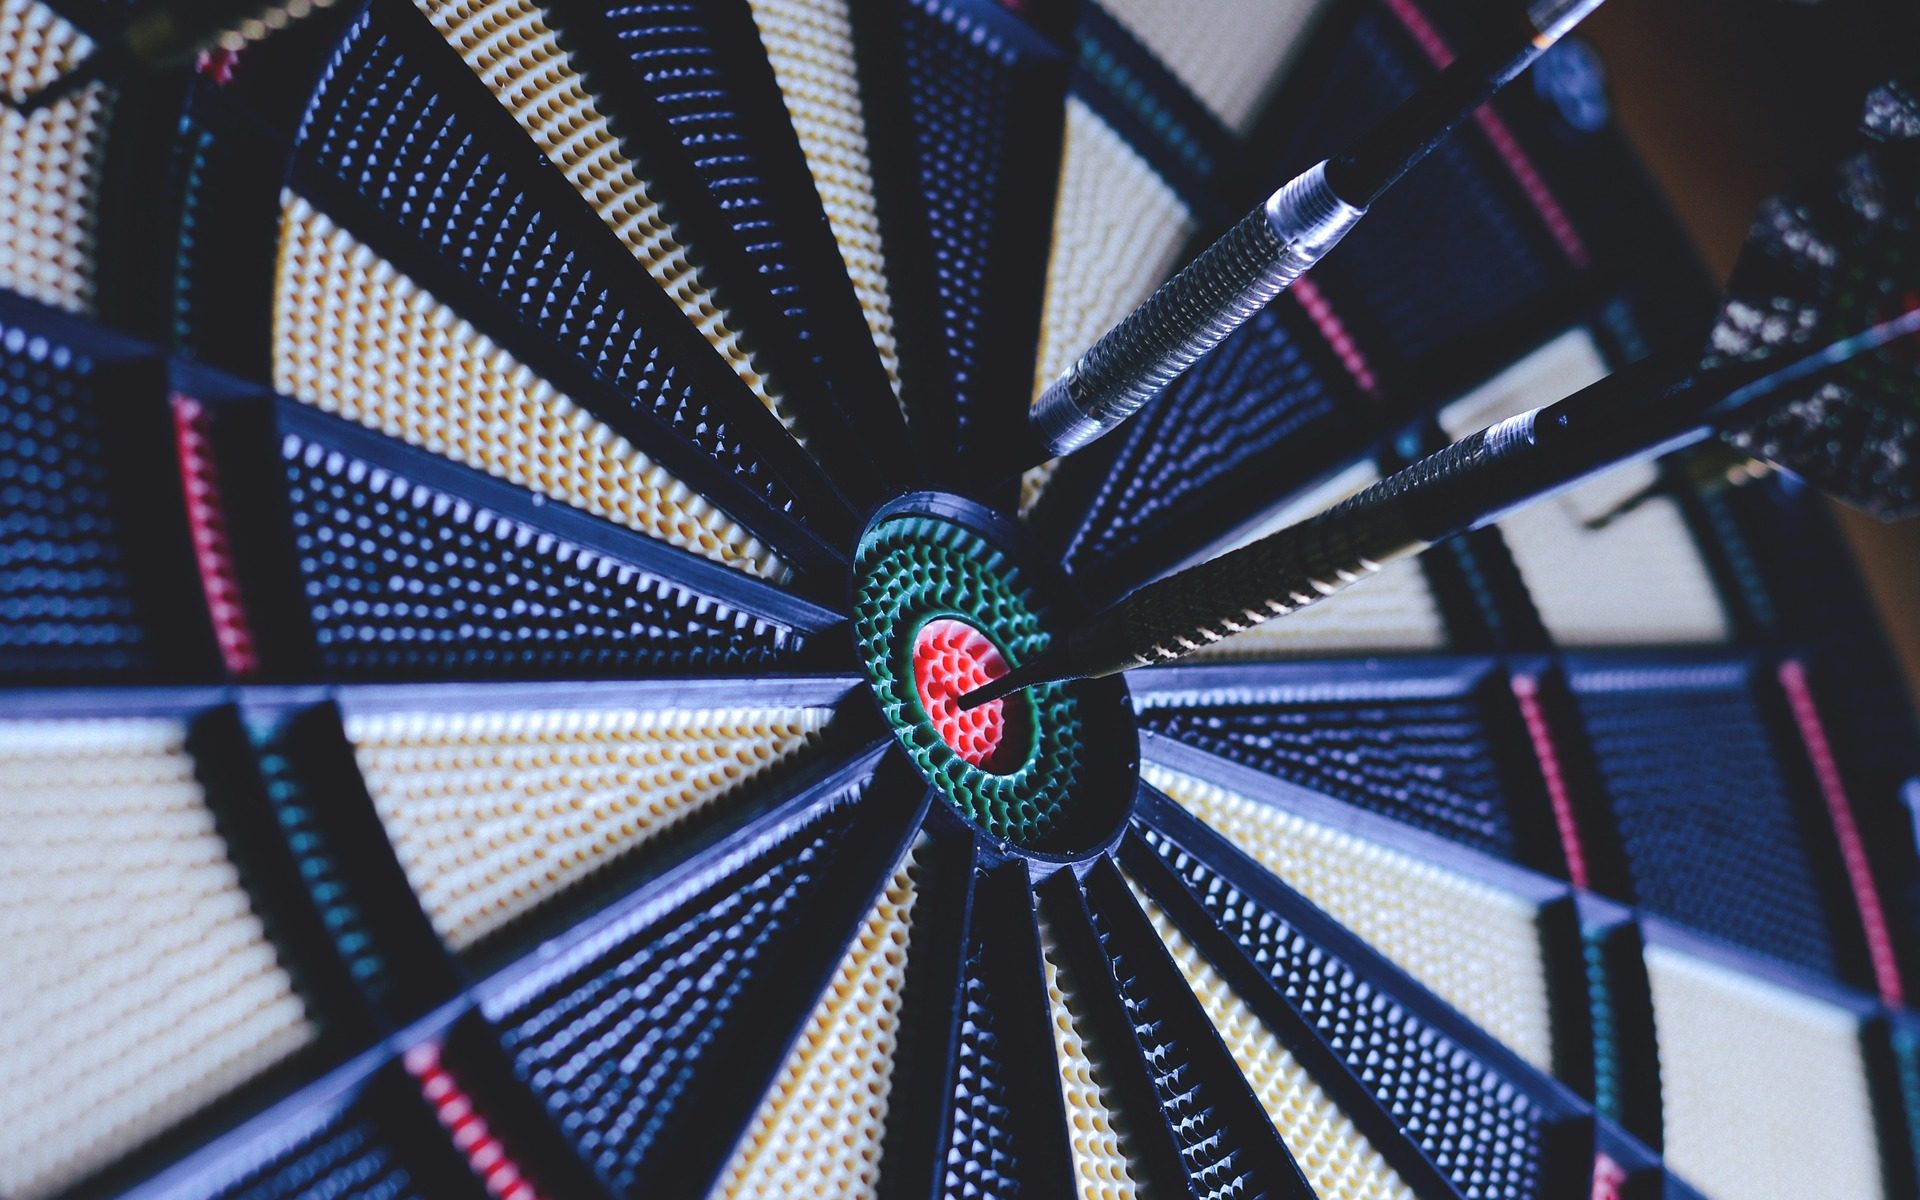 99+ Useful Retargeting Statistics Every Marketer Should Know